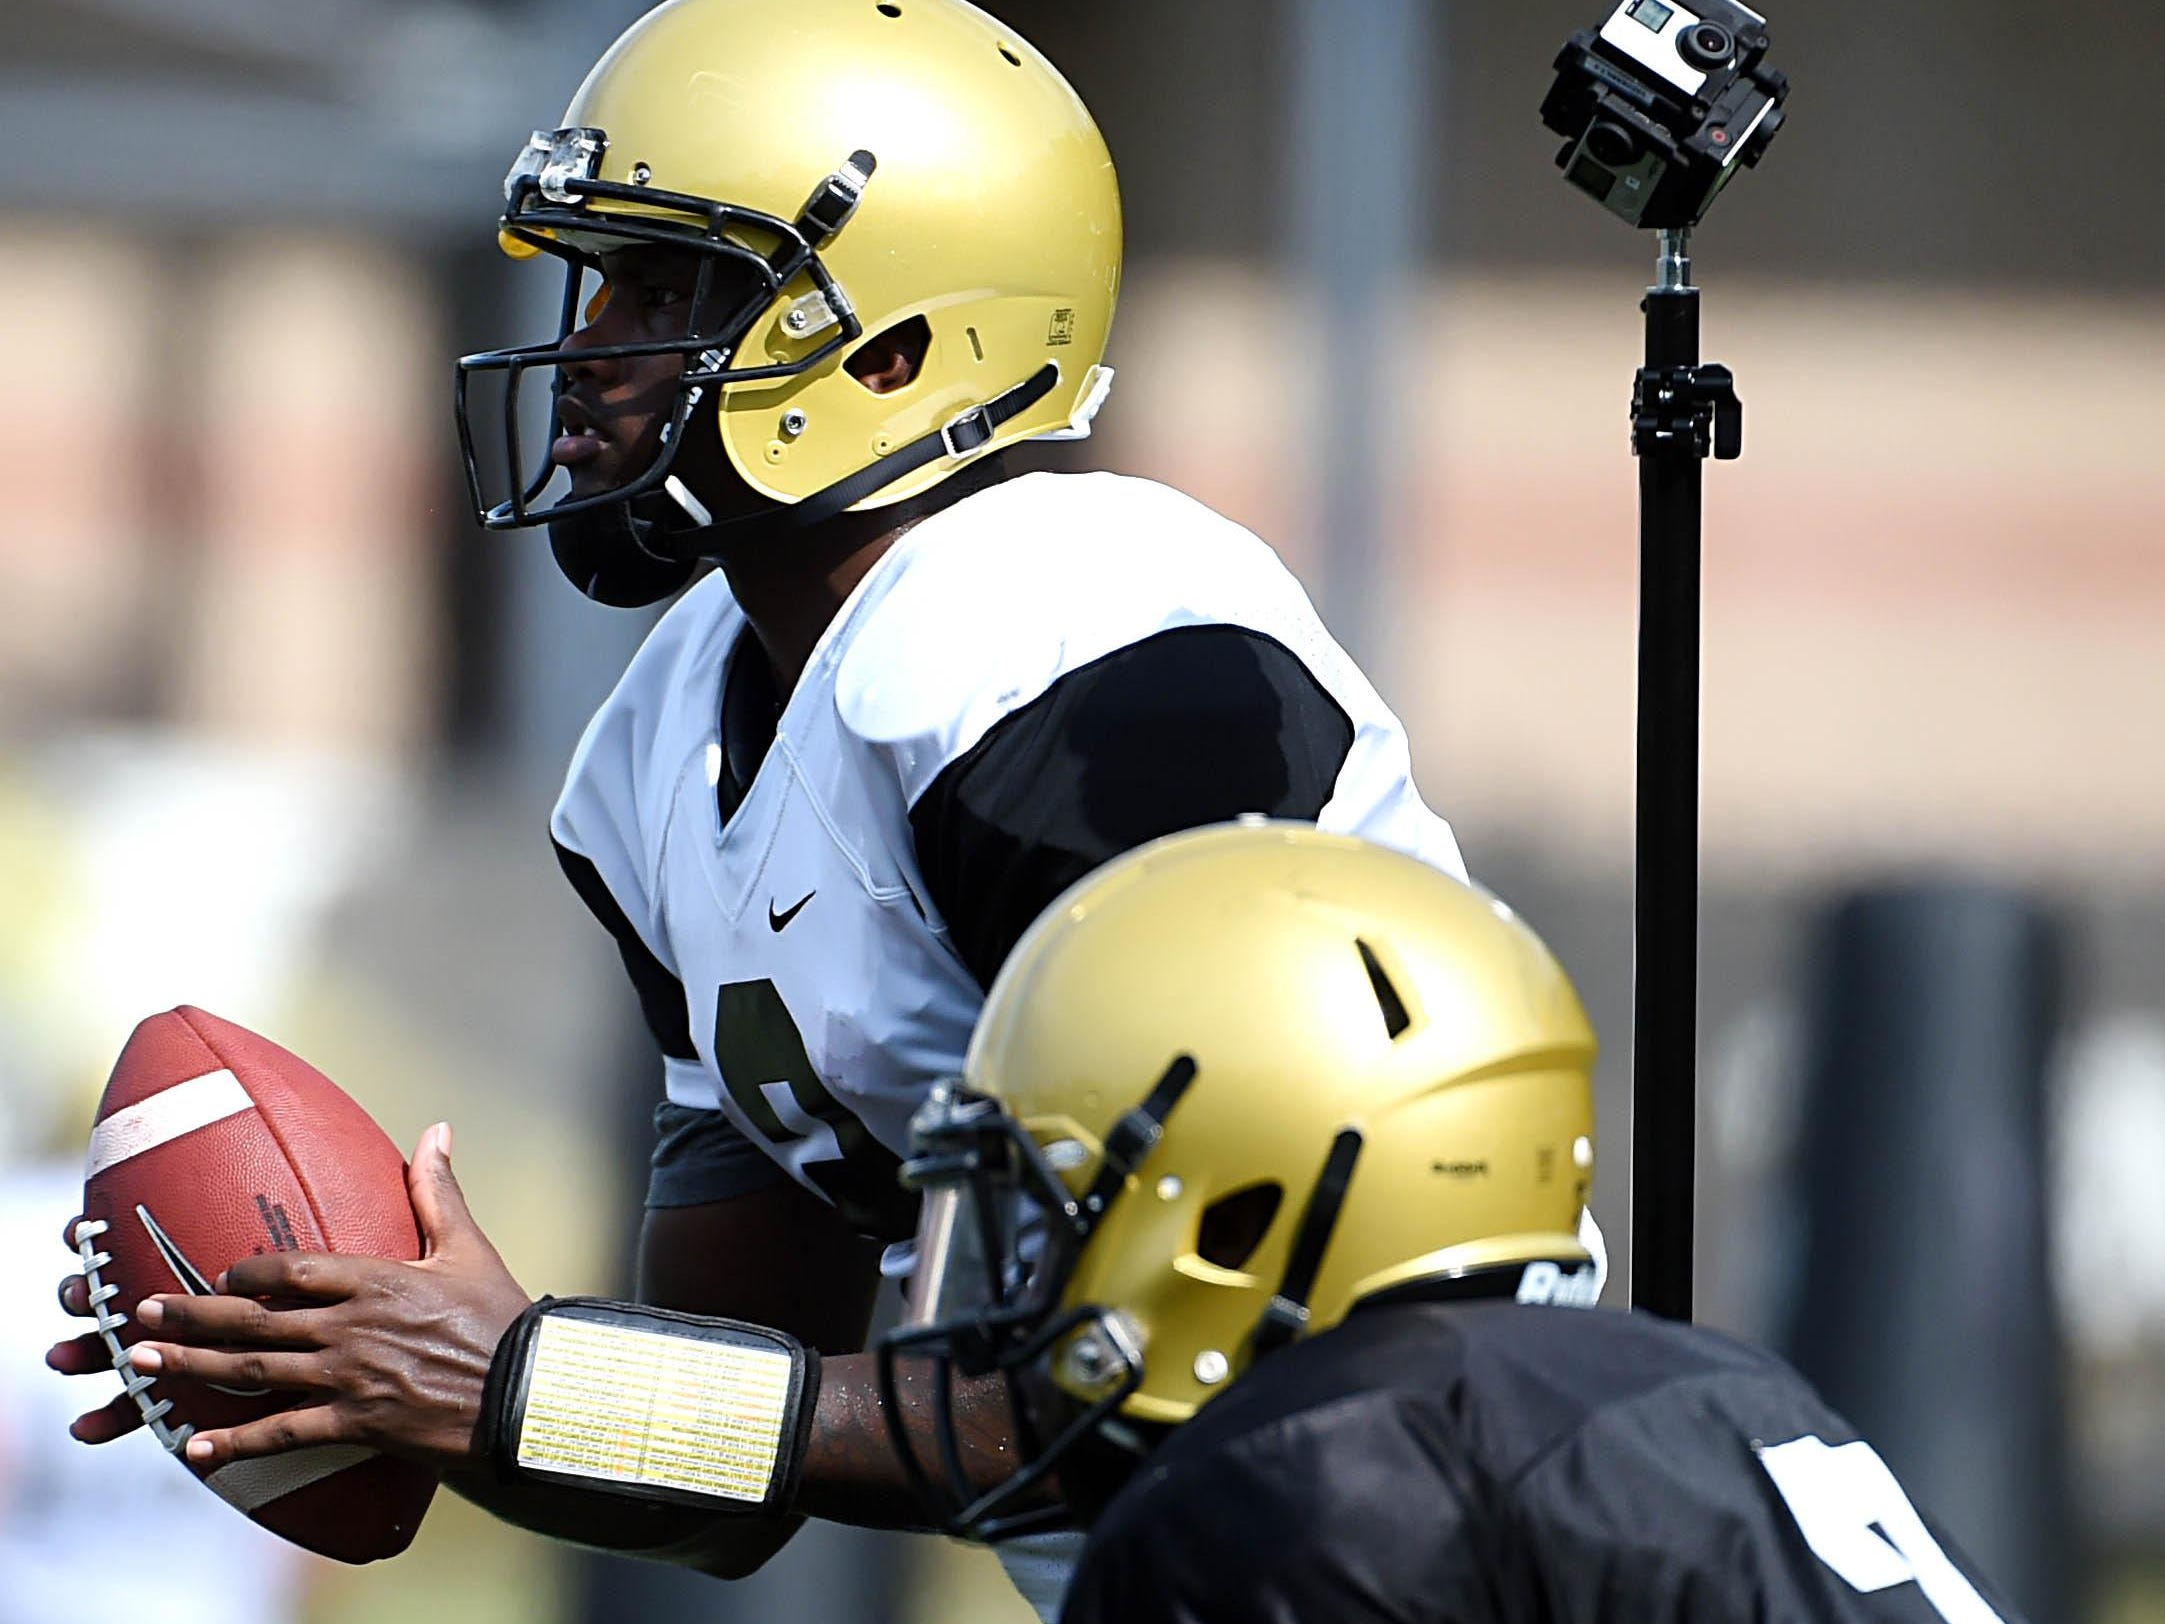 Six GoPro cameras mounted together record video of Vanderbilt quarterback Johnny McCrary (2) during practice.